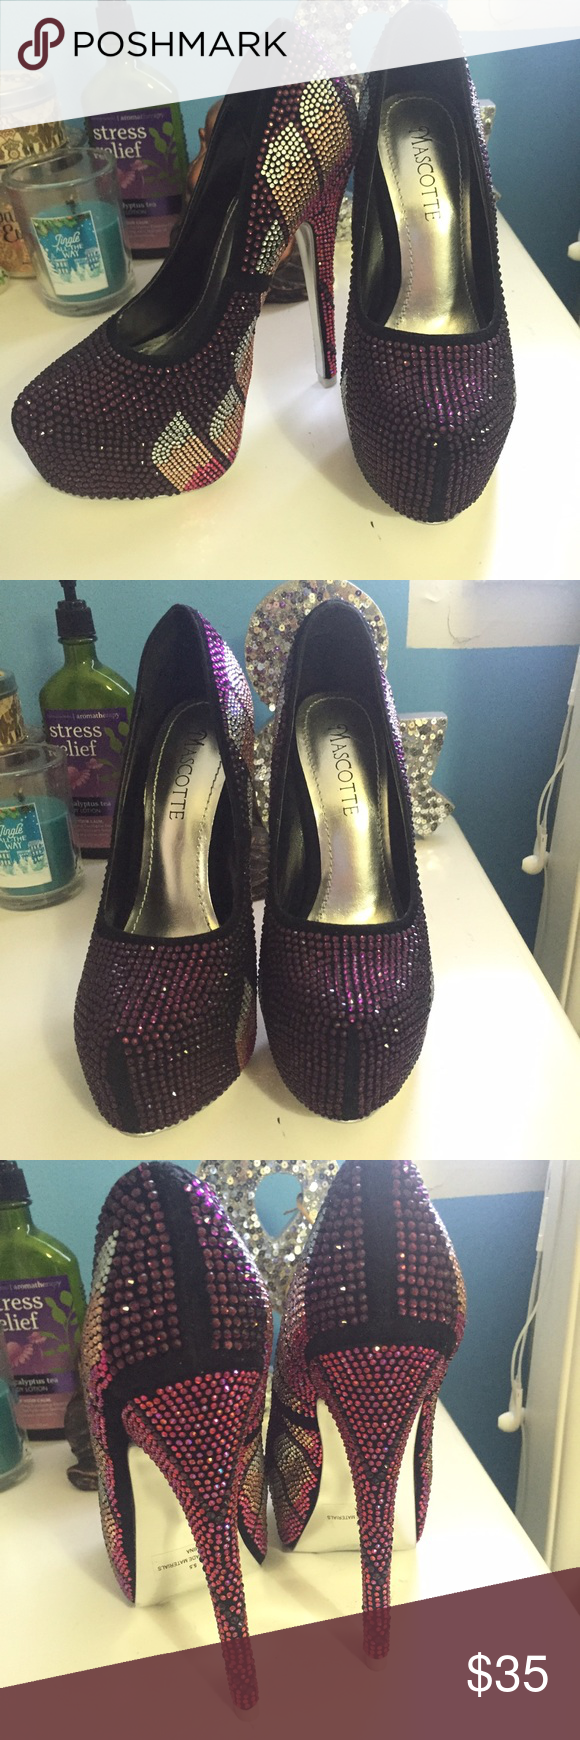 BEJEWELED HEELS SIZE 5. Perfect condition. Never worn. Open to offers. Steve Madden Shoes Platforms